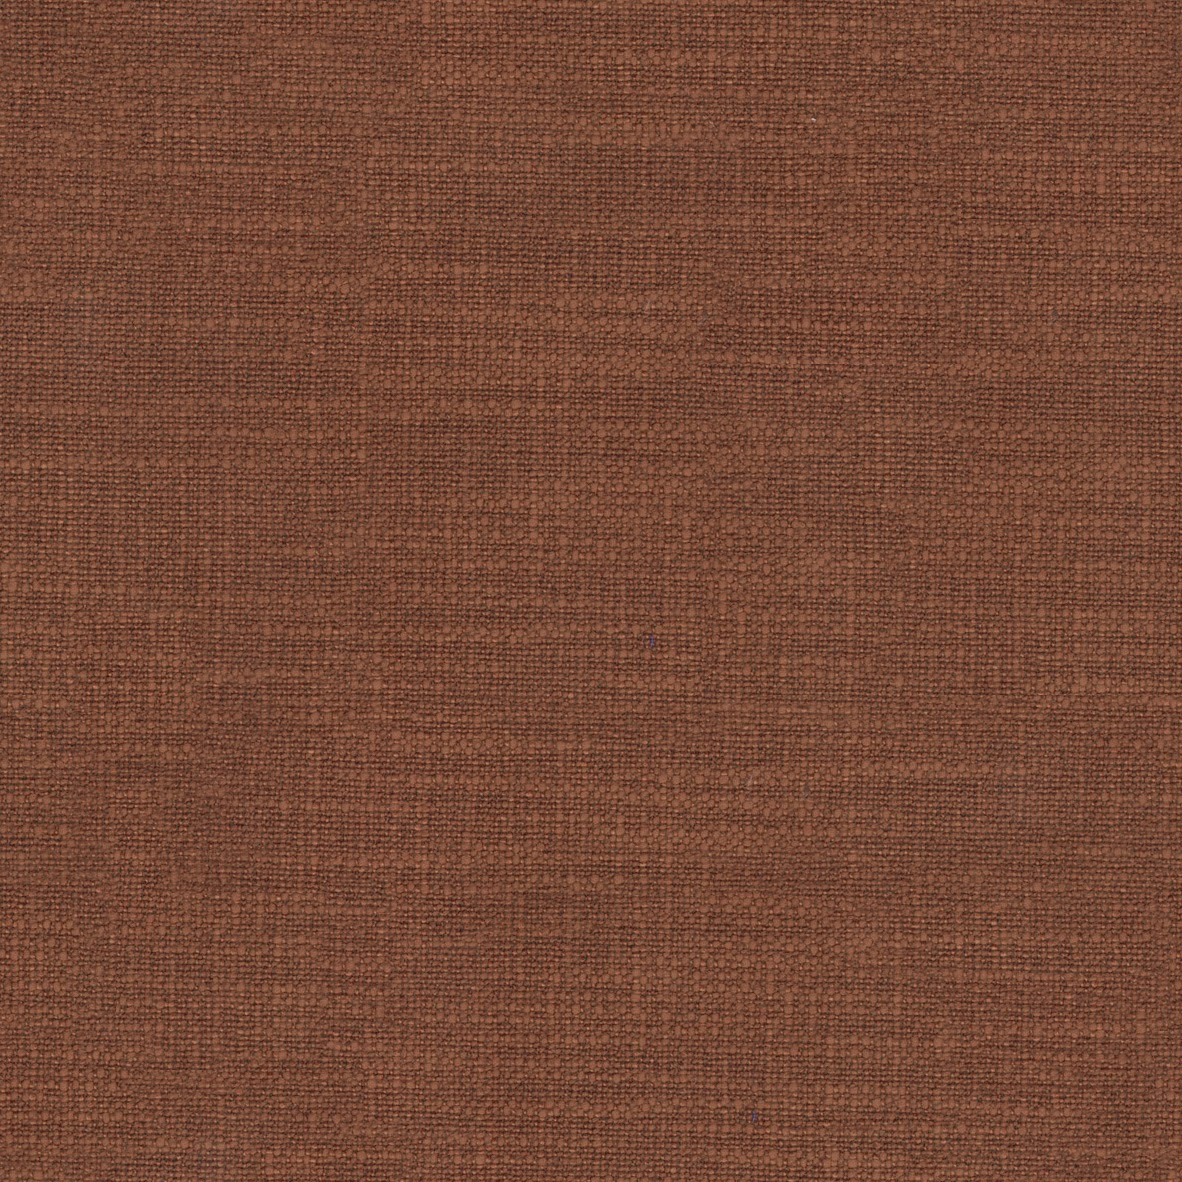 Brown Seamless Fabric Textures Seamless Brown Fabric Texture 43 Maps Texturise Free